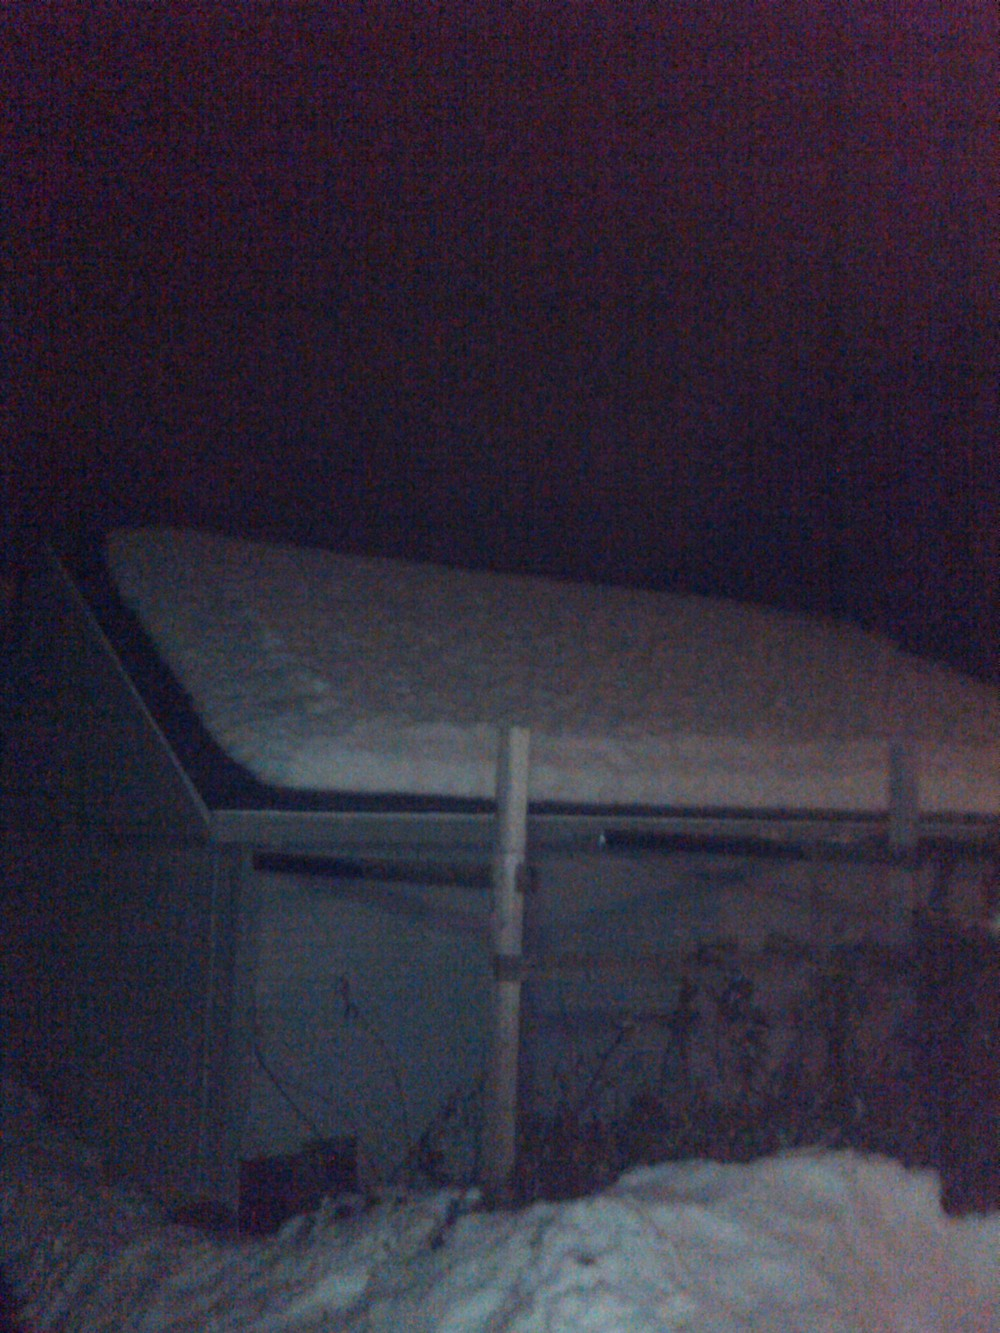 Snow on my garage's roof.